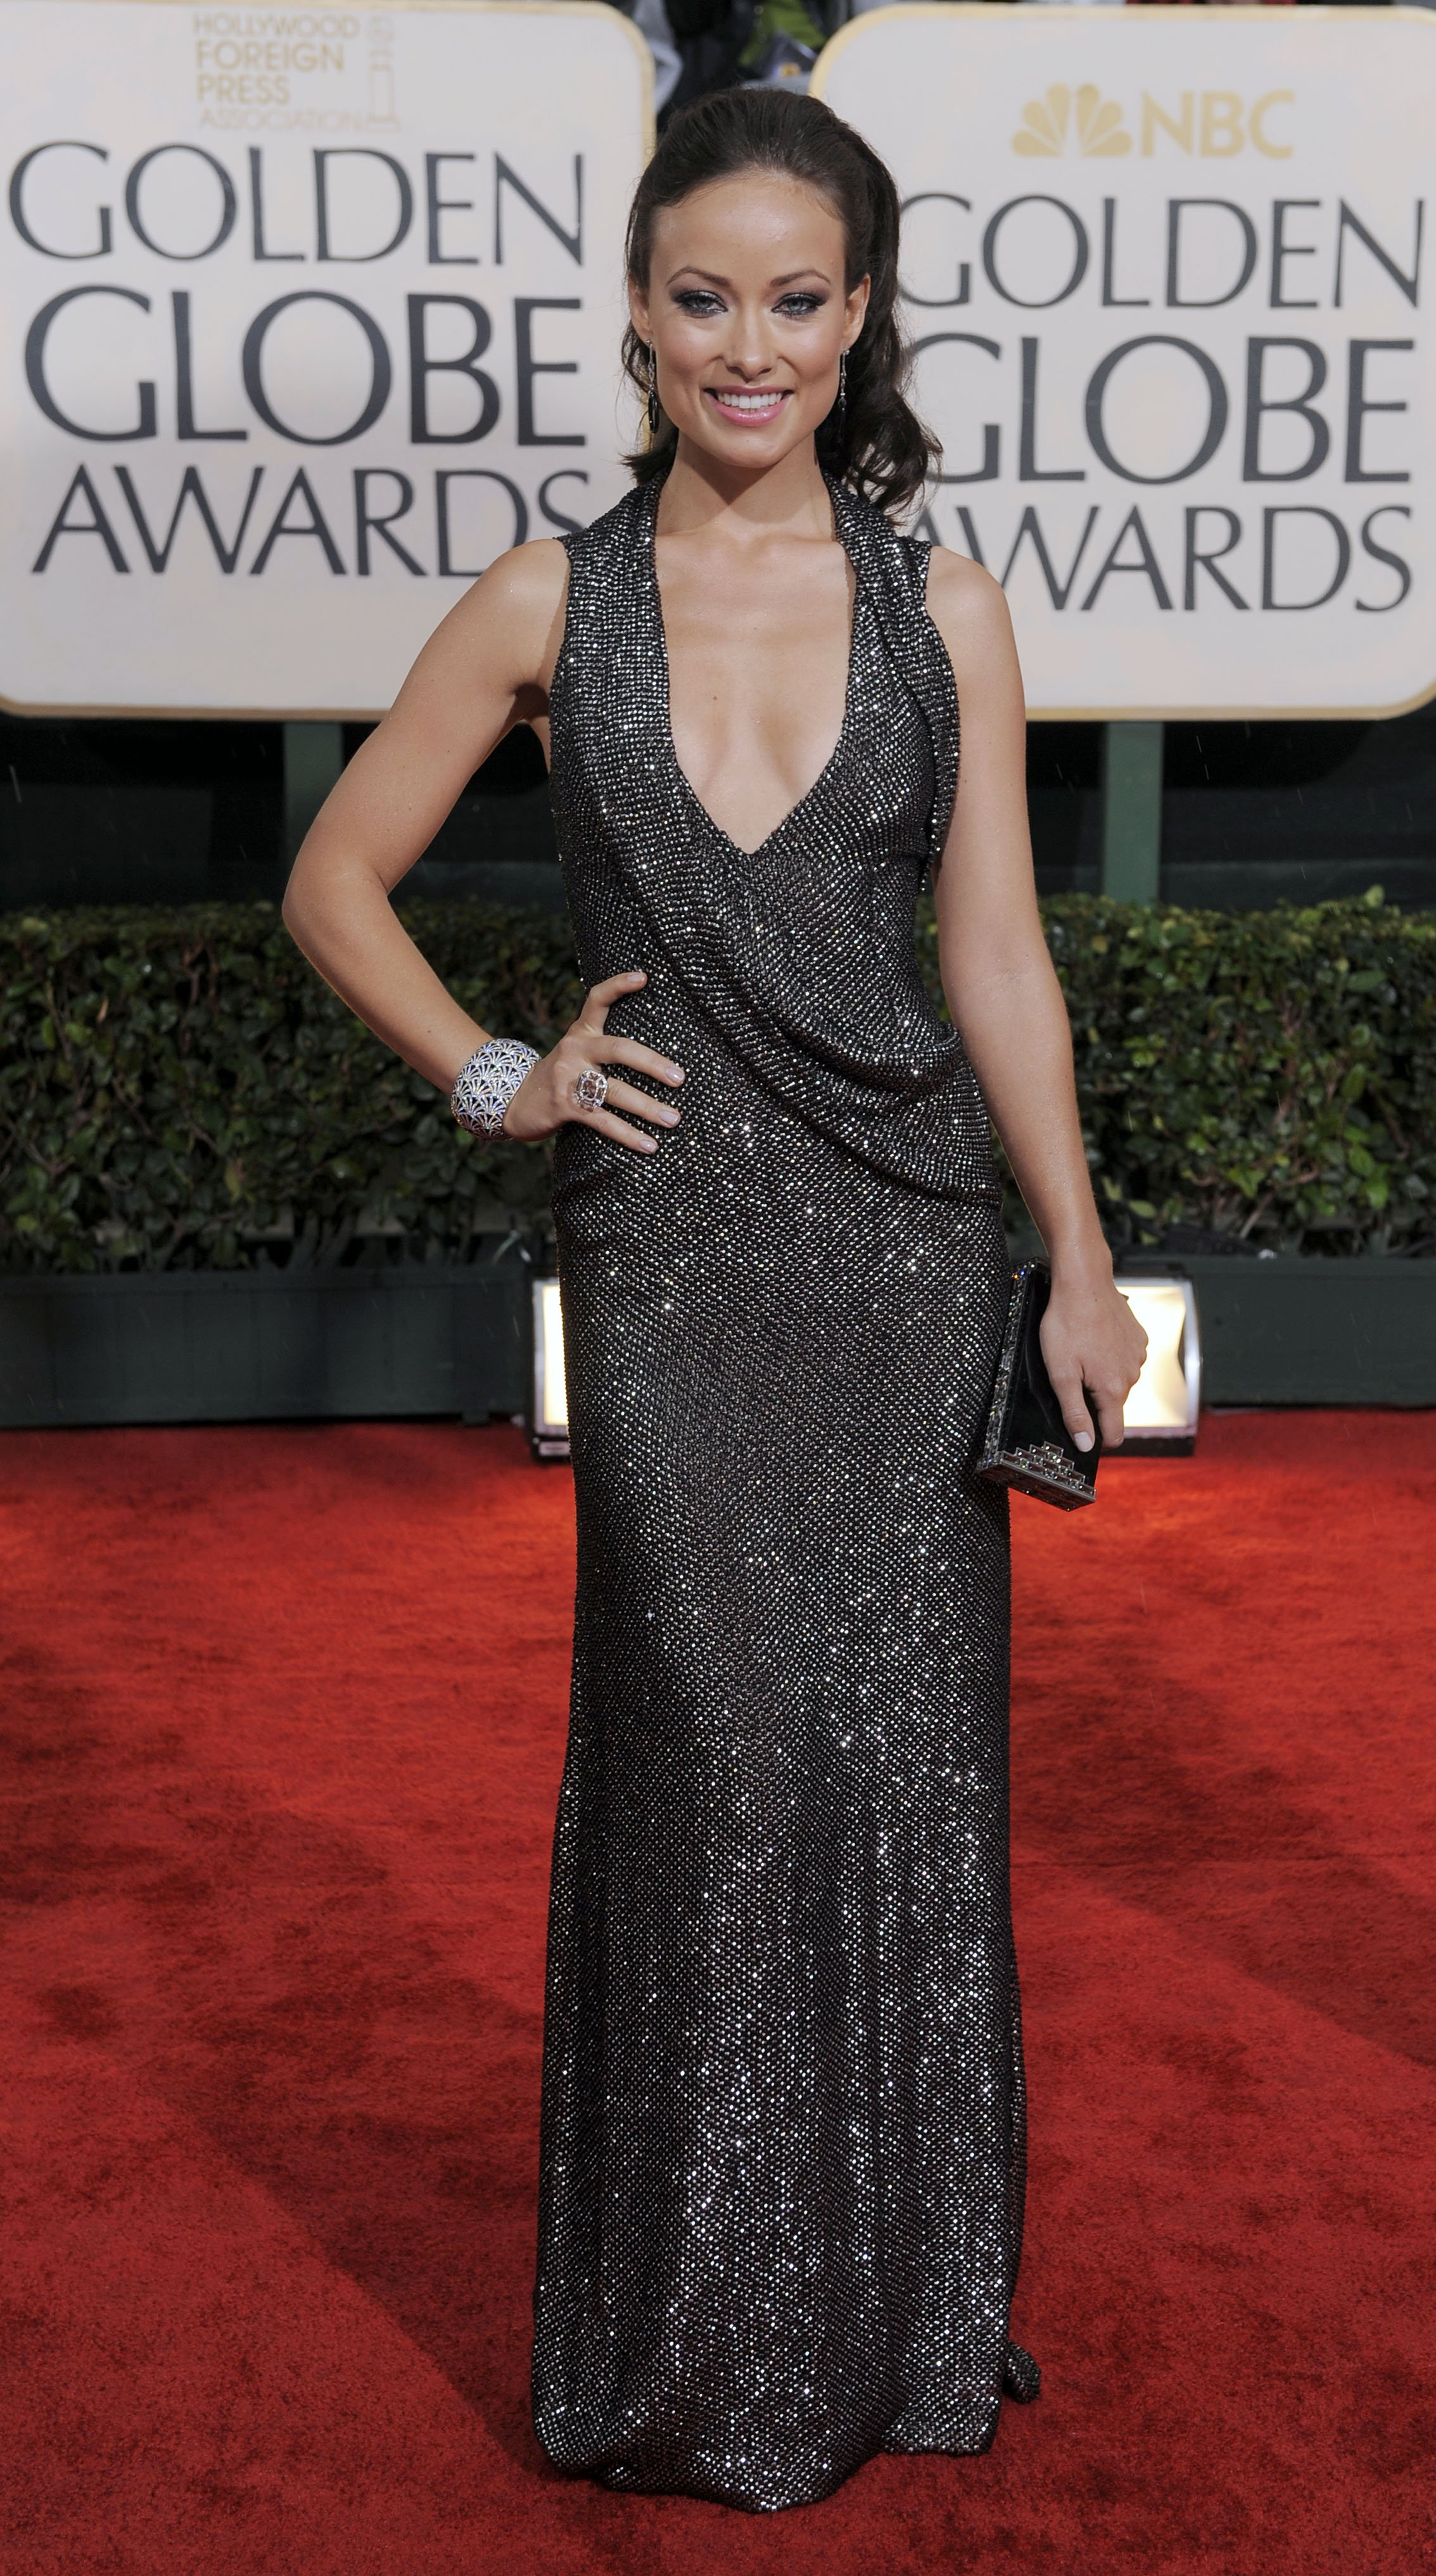 78494_Olivia_Wilde_arrives_at_the_67th_Annual_Golden_Globe_Awards-8_122_850lo.jpg